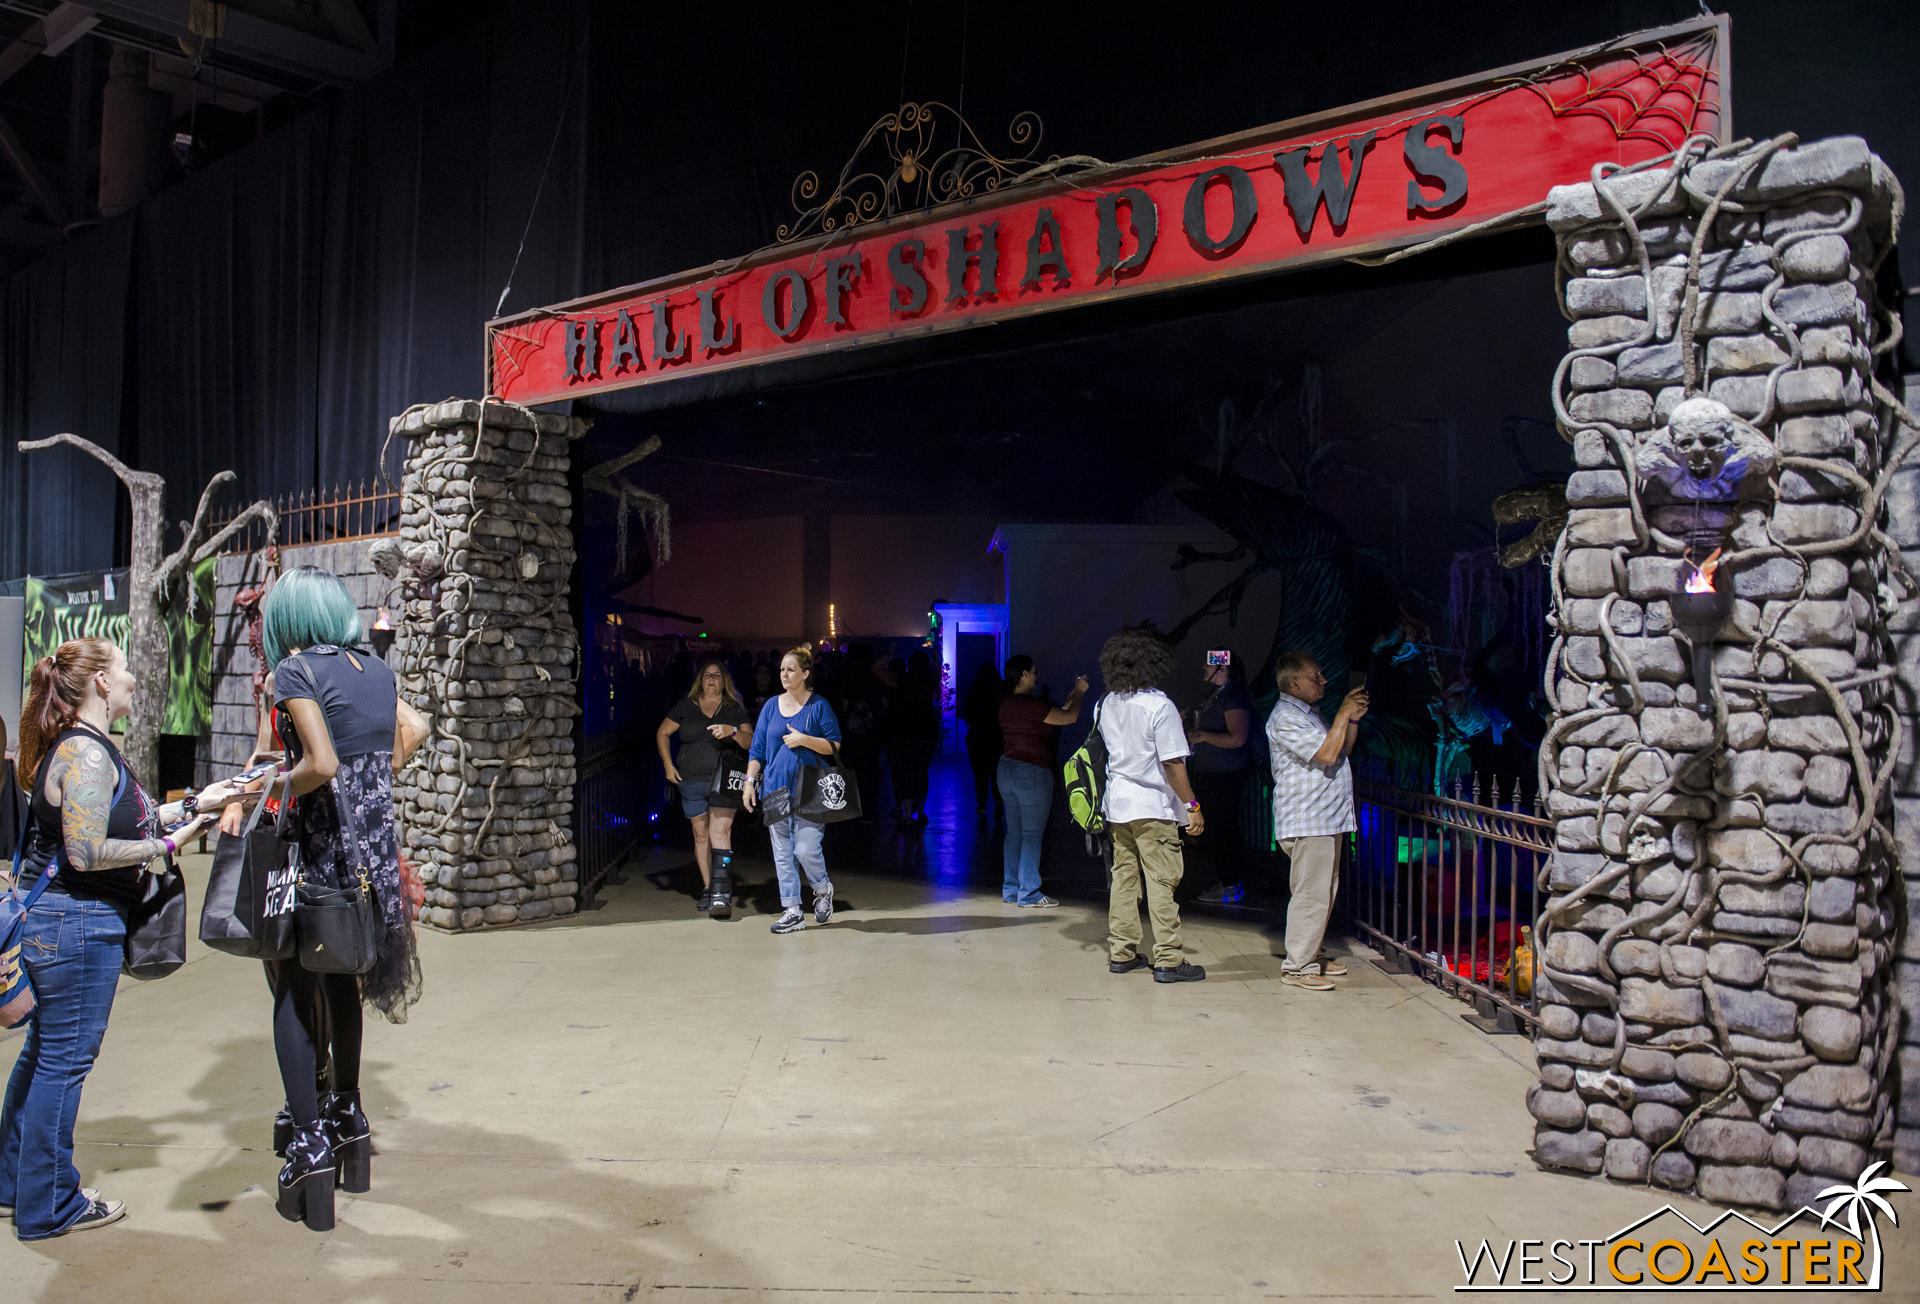 The entrance to the Hall of Shadows was beside the exhibition hall, identical to last year.